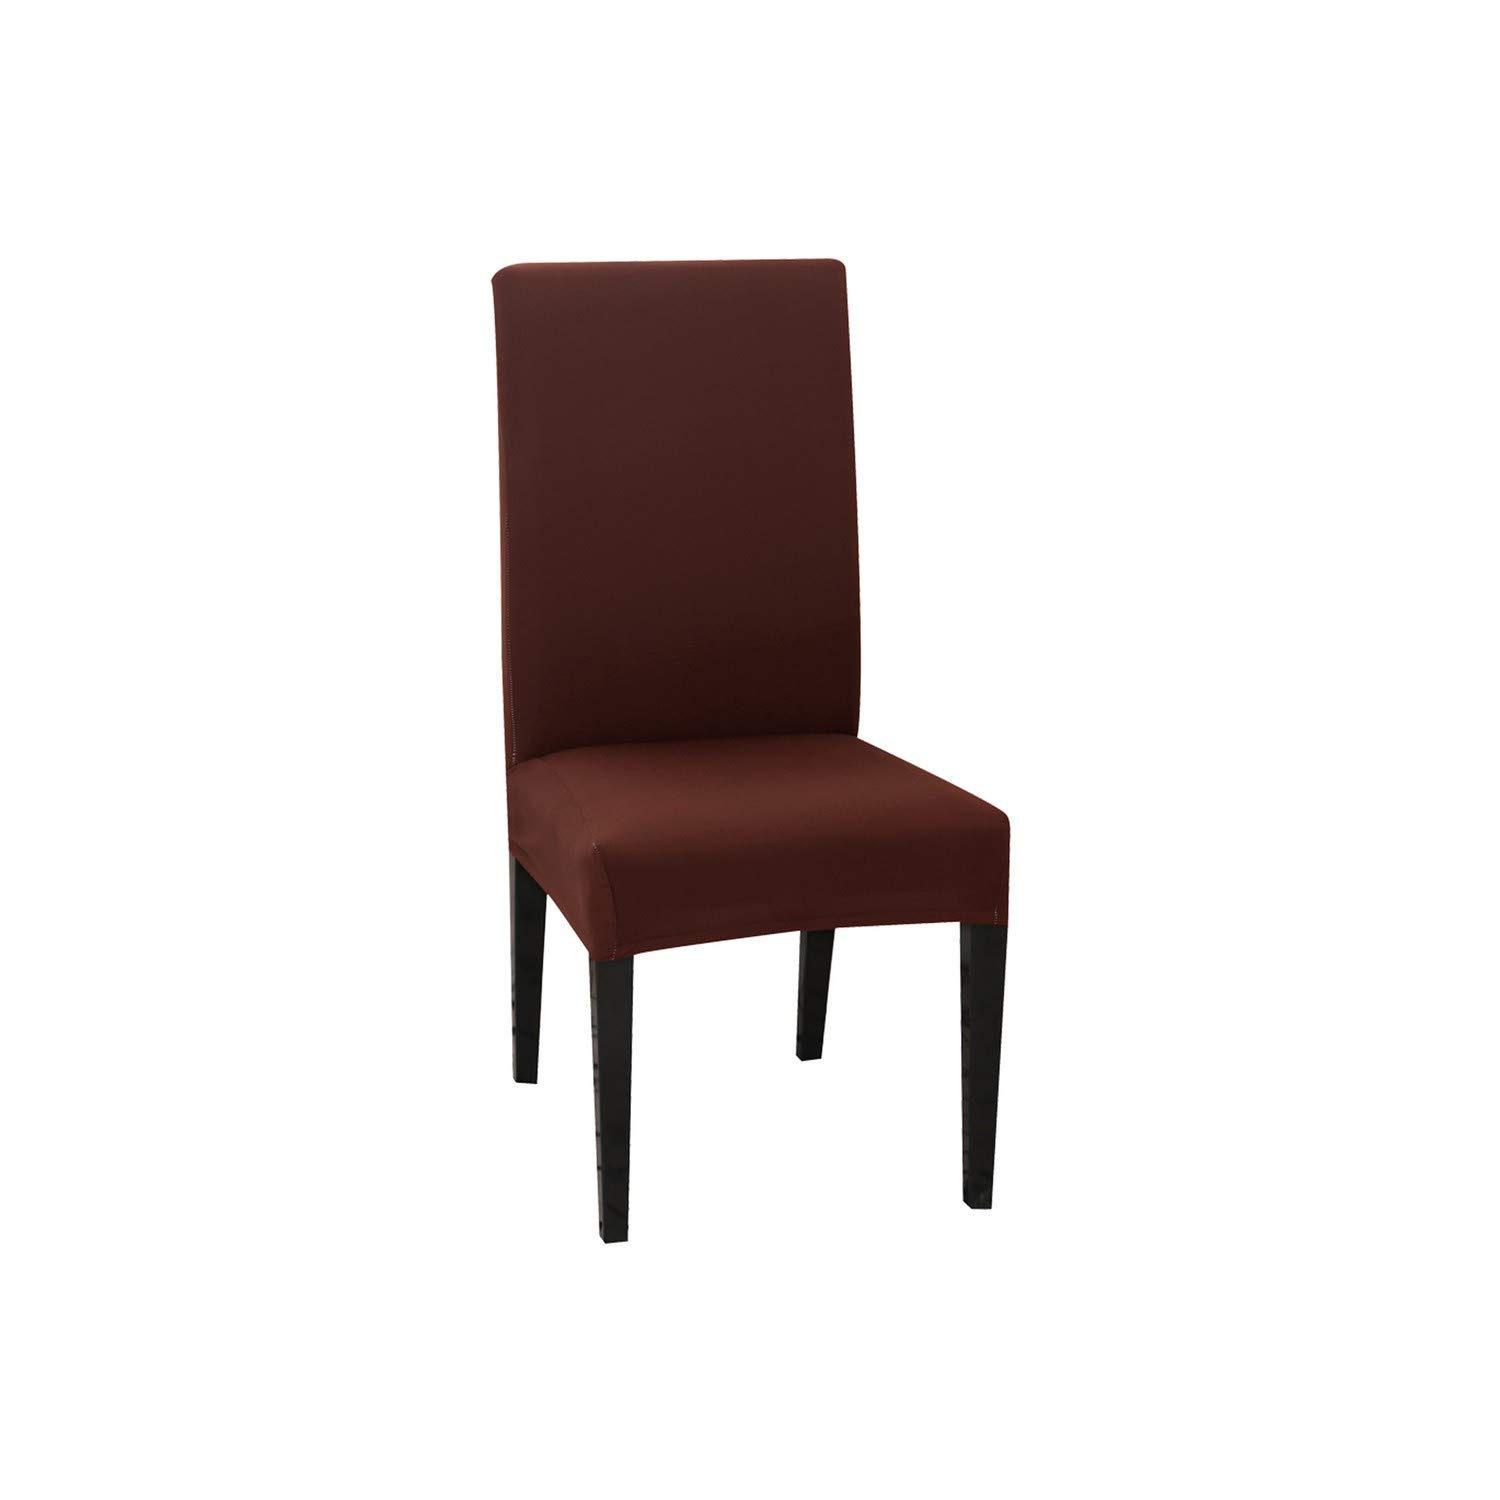 1/2/4PCS Solid Color Chair Cover Spandex Stretch Elastic Slipcovers Chair Covers White for Dining Room Banquet Kitchen Wedding,Light Coffee,China,1PC